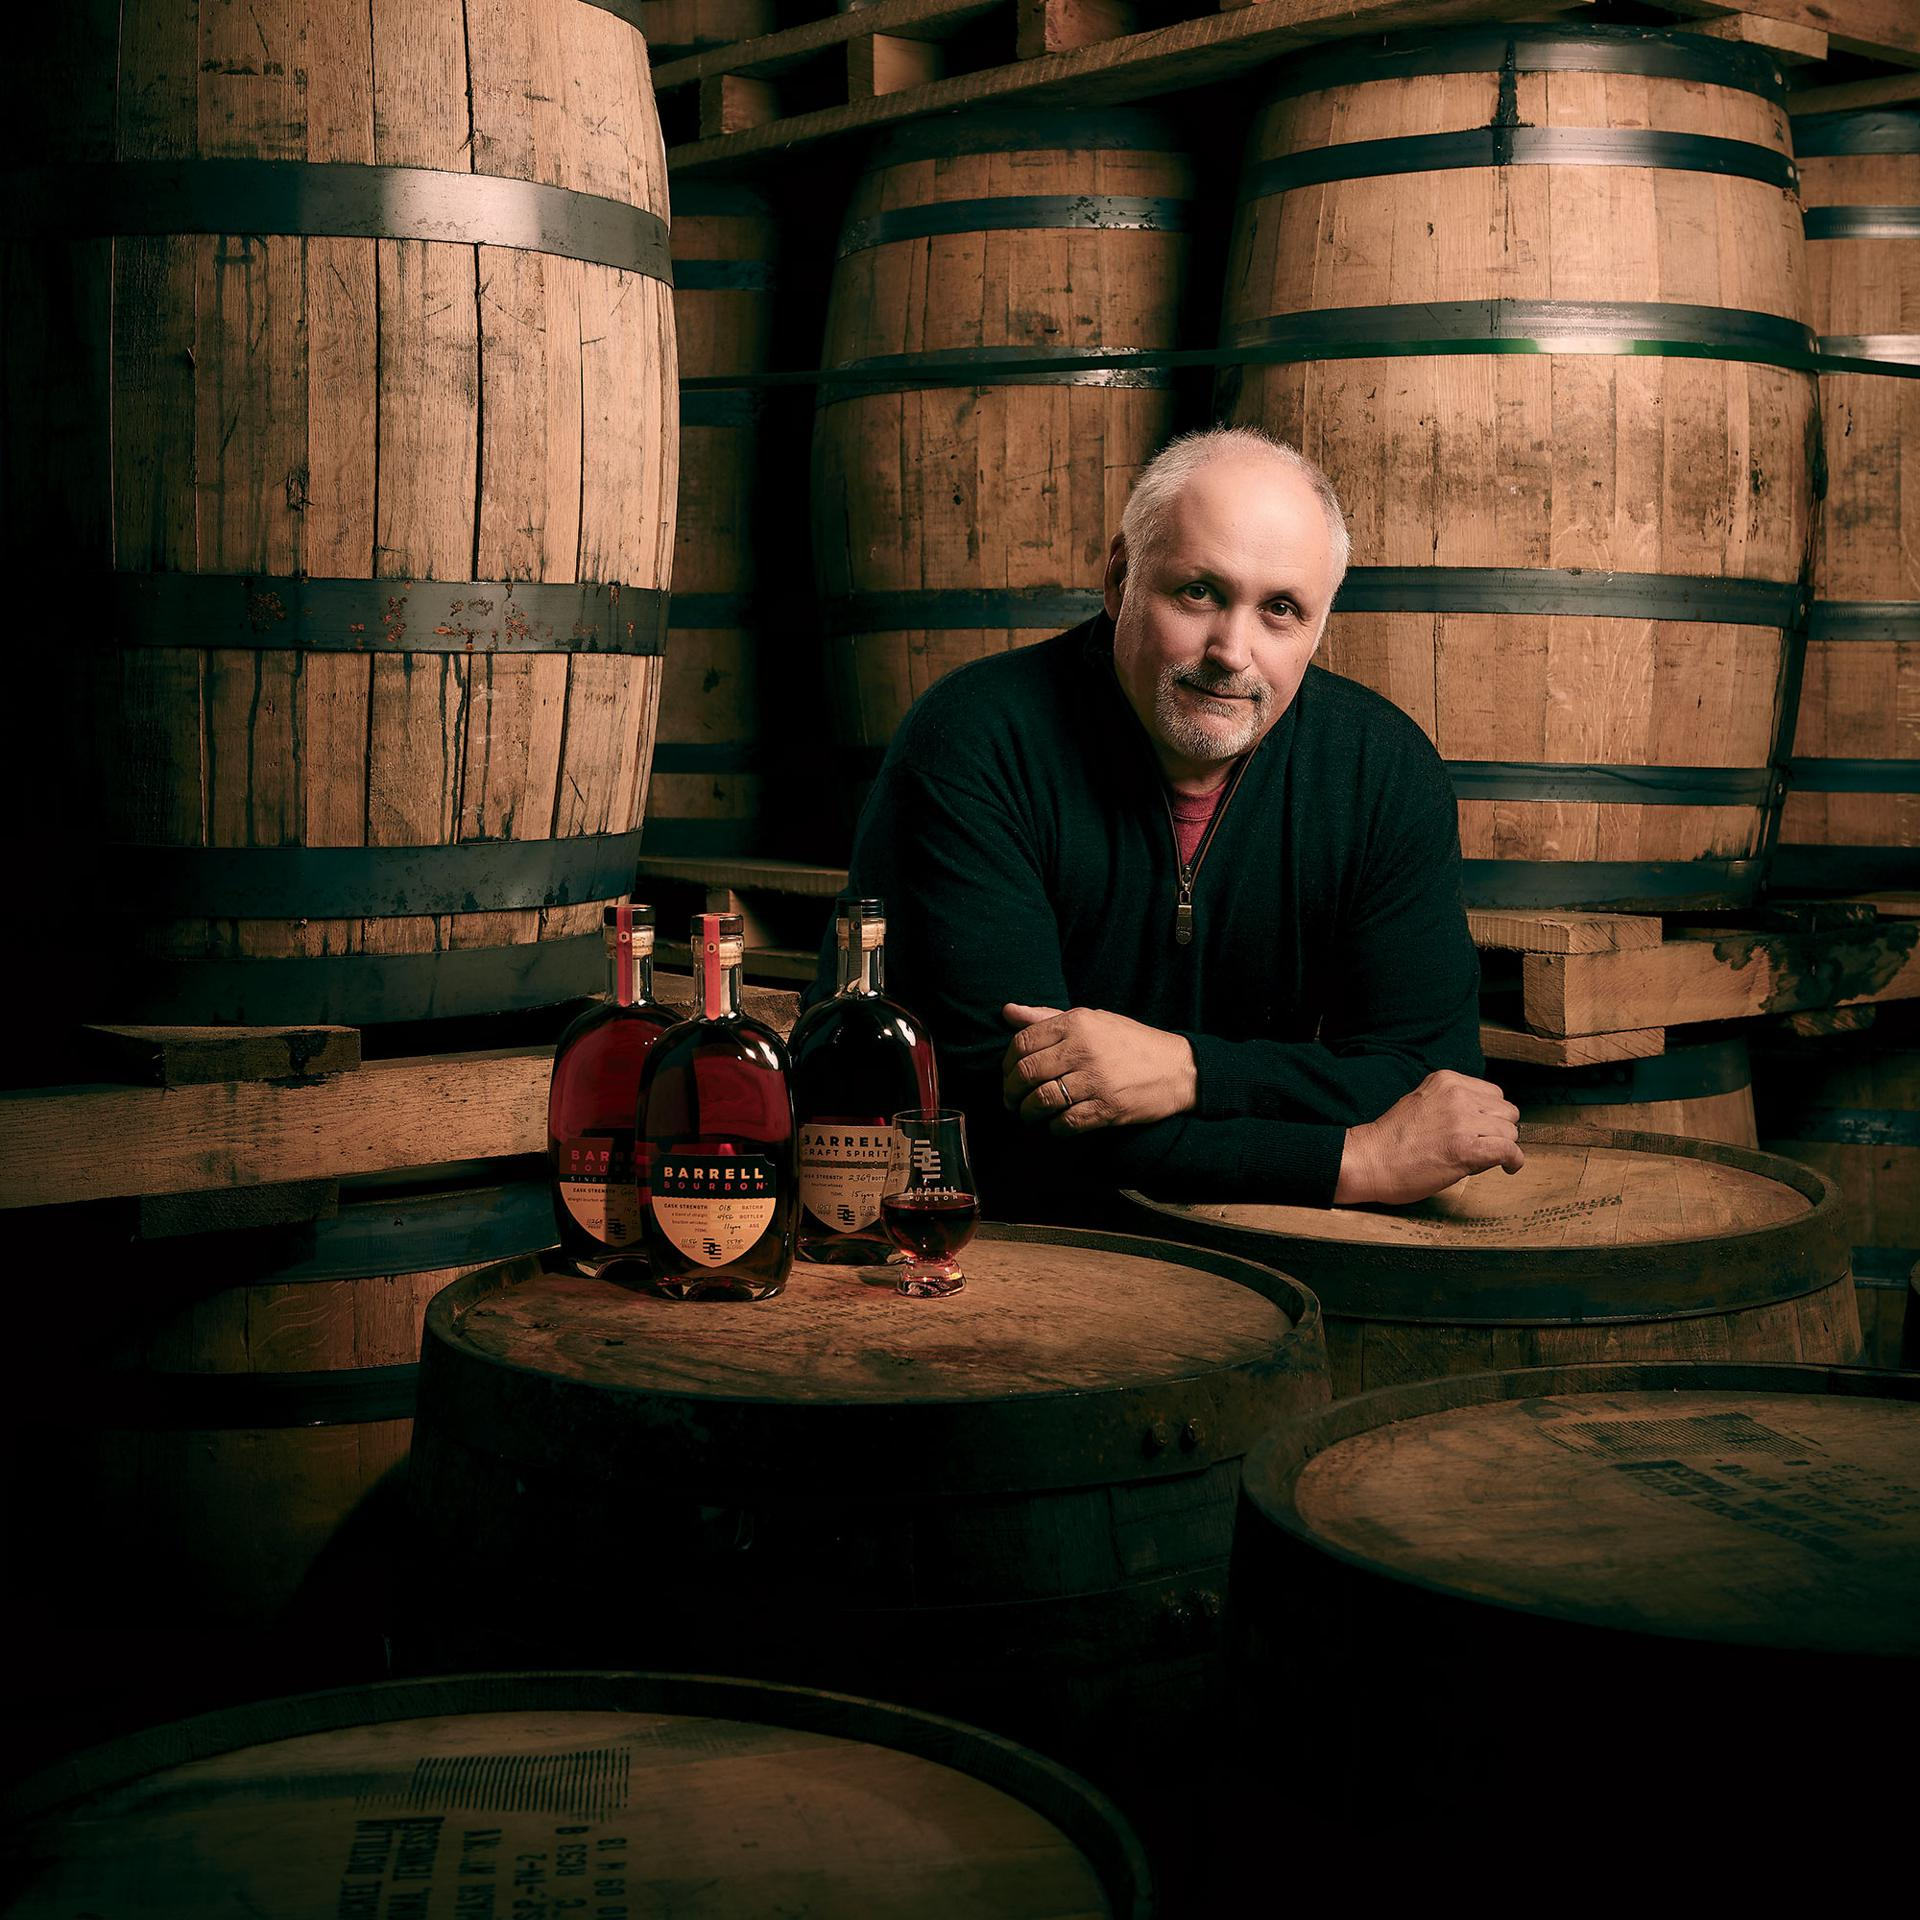 Cask Master: Joe Beatrice, founder of Barrell Craft Spirits, at his Louisville headquarters. He chose to build the brand before building a distillery.